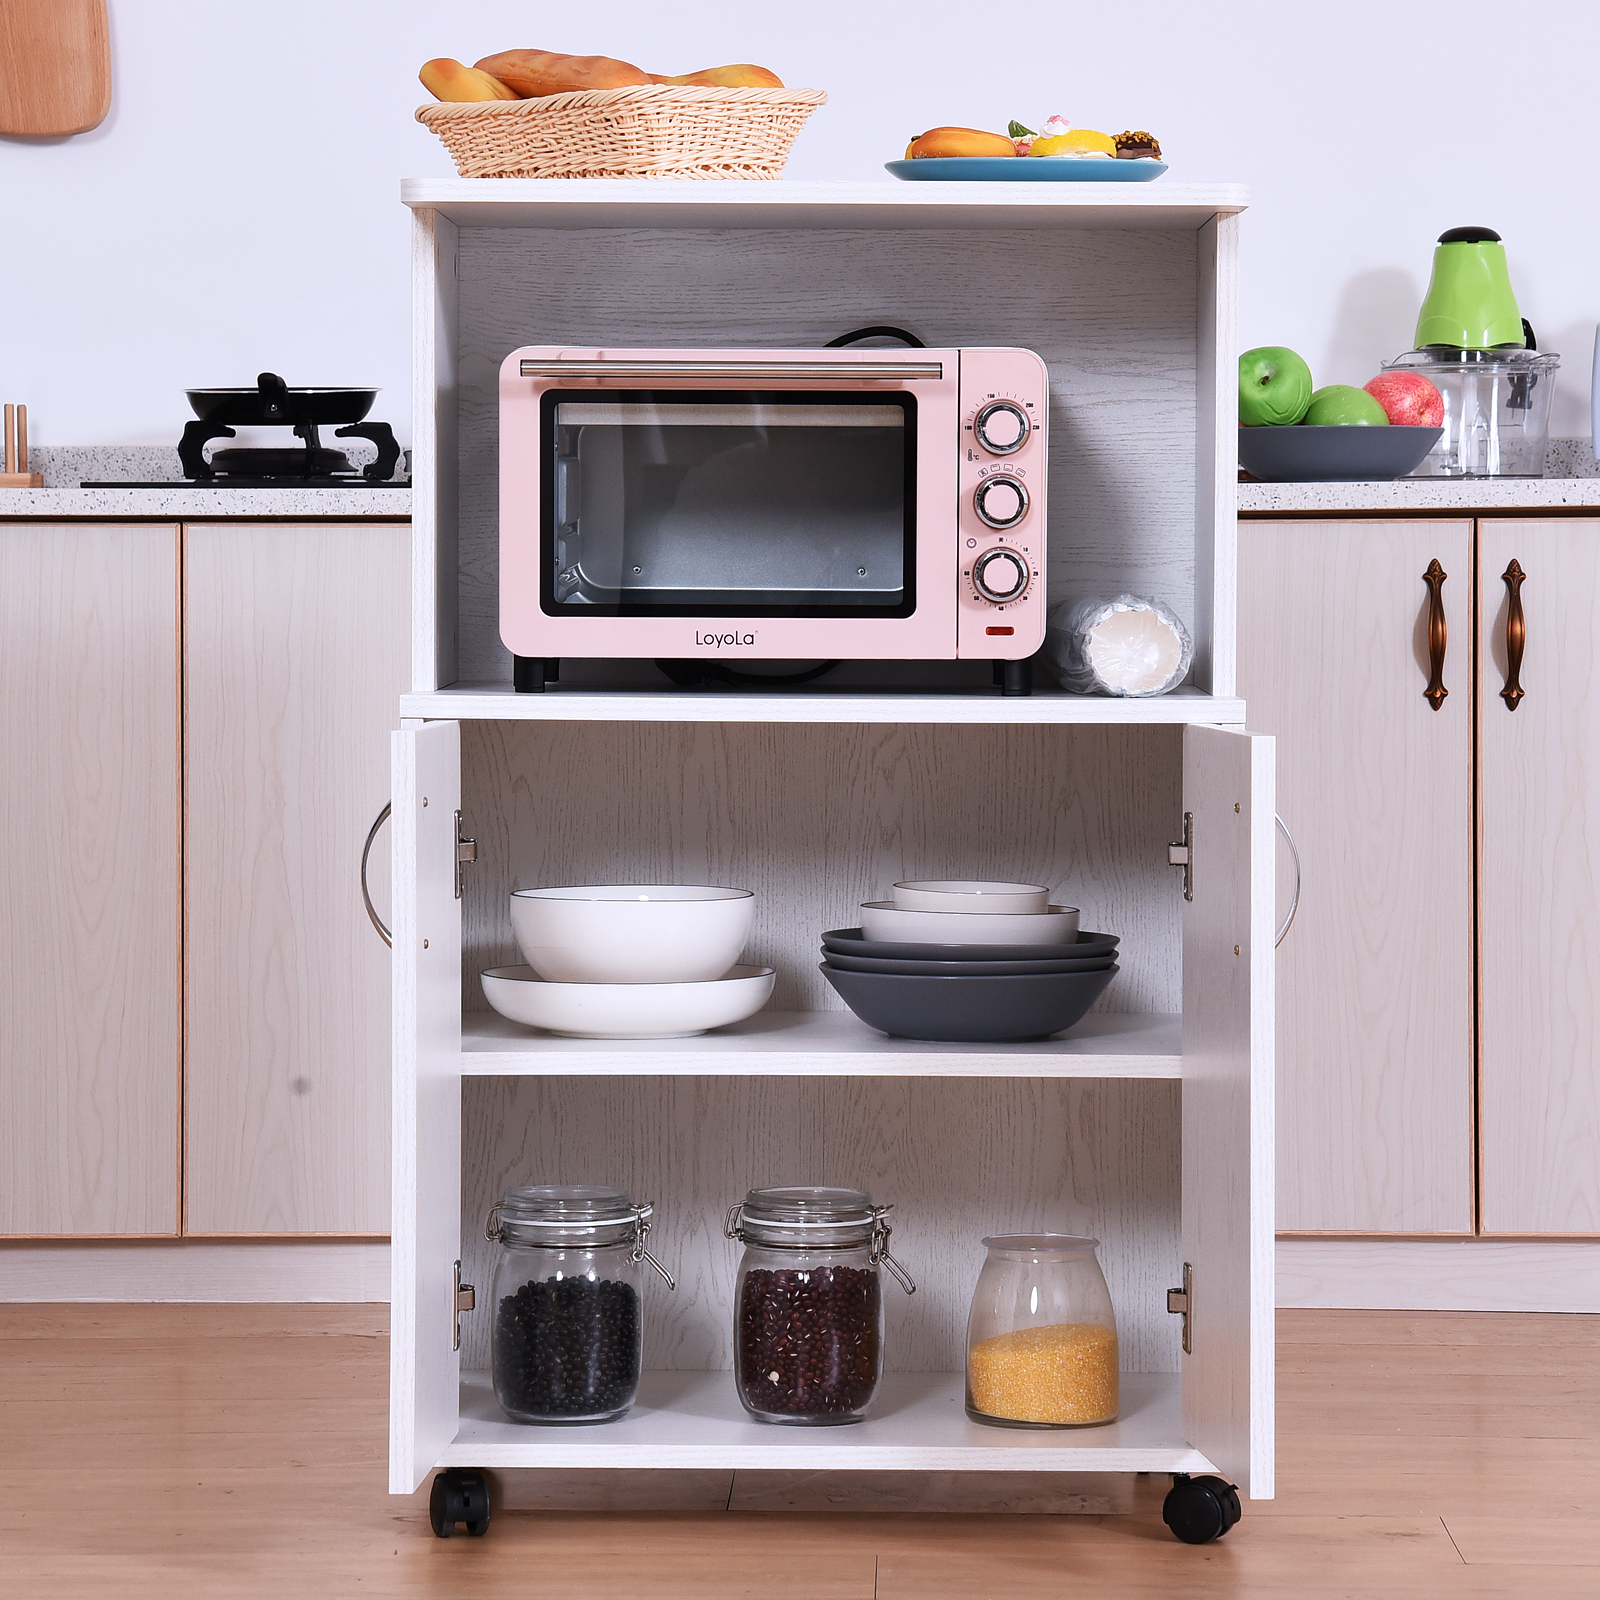 Miraculous Details About Rolling Kitchen Trolley Microwave Cart 2 Door Cabinet Storage Shelves W Wheels Home Remodeling Inspirations Propsscottssportslandcom